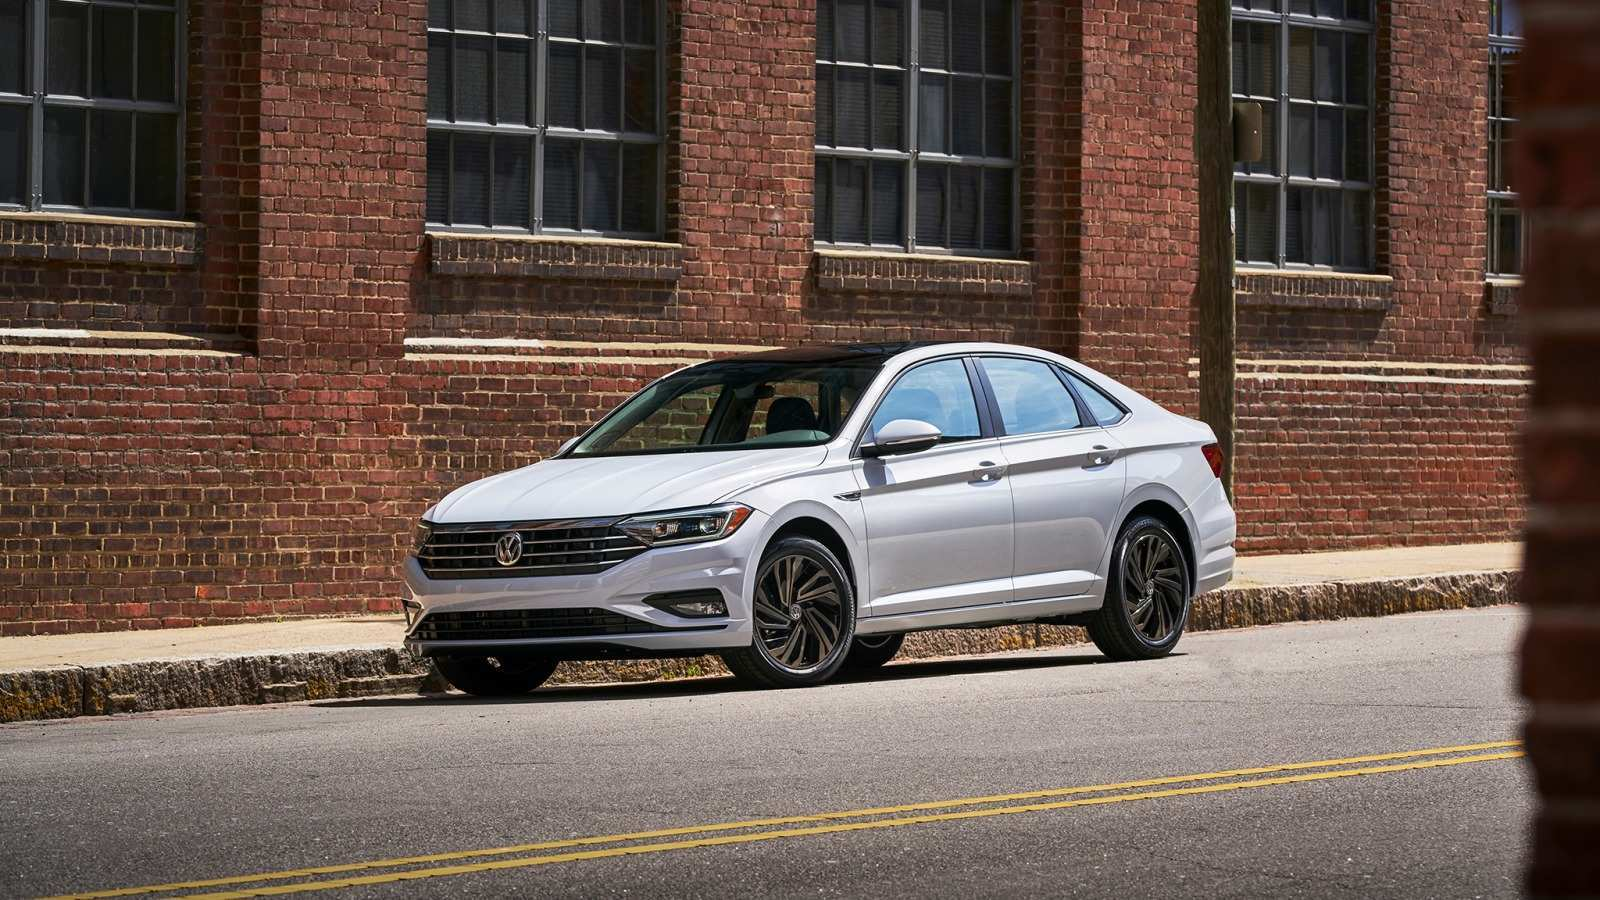 96 New The Volkswagen Canada 2019 Specs And Review Performance and New Engine by The Volkswagen Canada 2019 Specs And Review